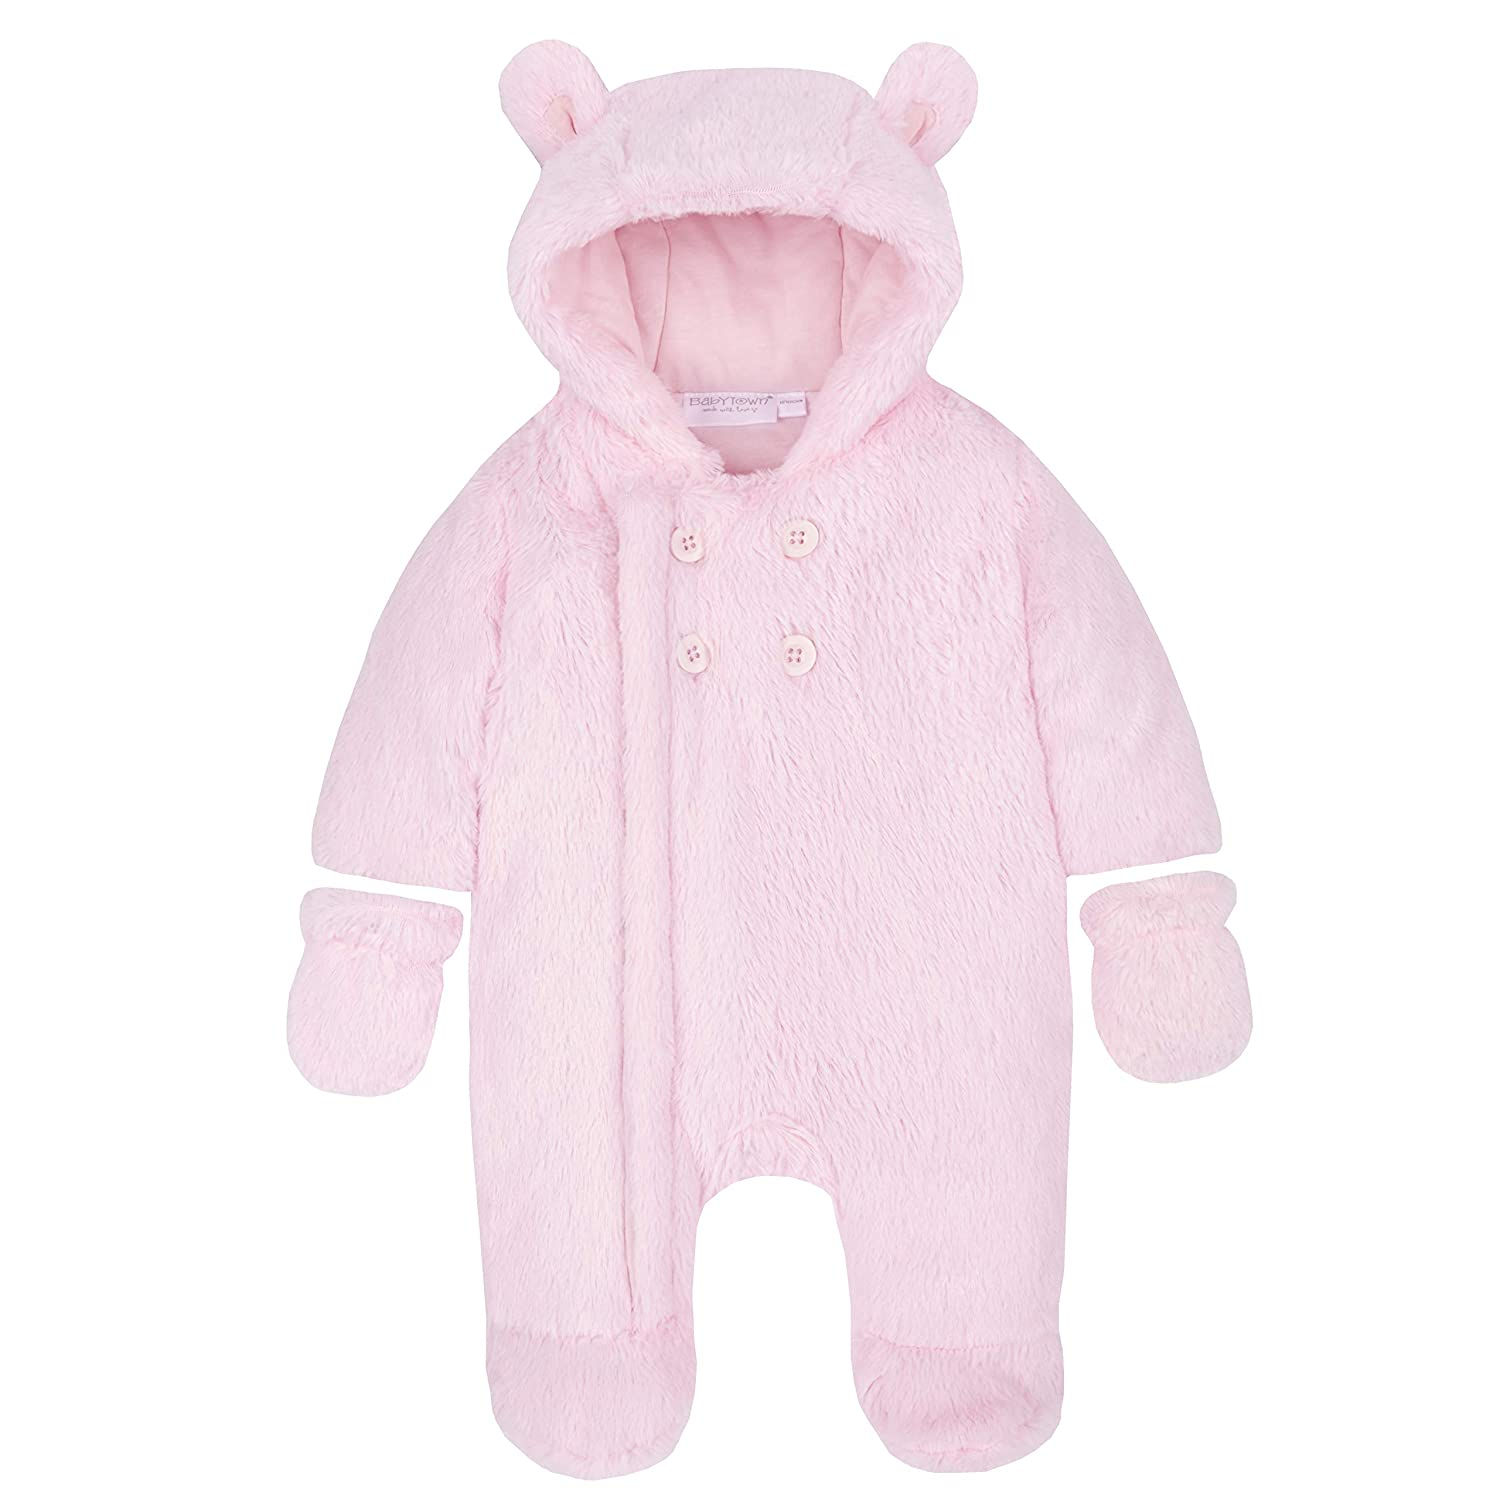 BABY TOWN Babies Snowsuit Pram Suit Feather Feel Lined Pink Cream Blue Detachable Mitts